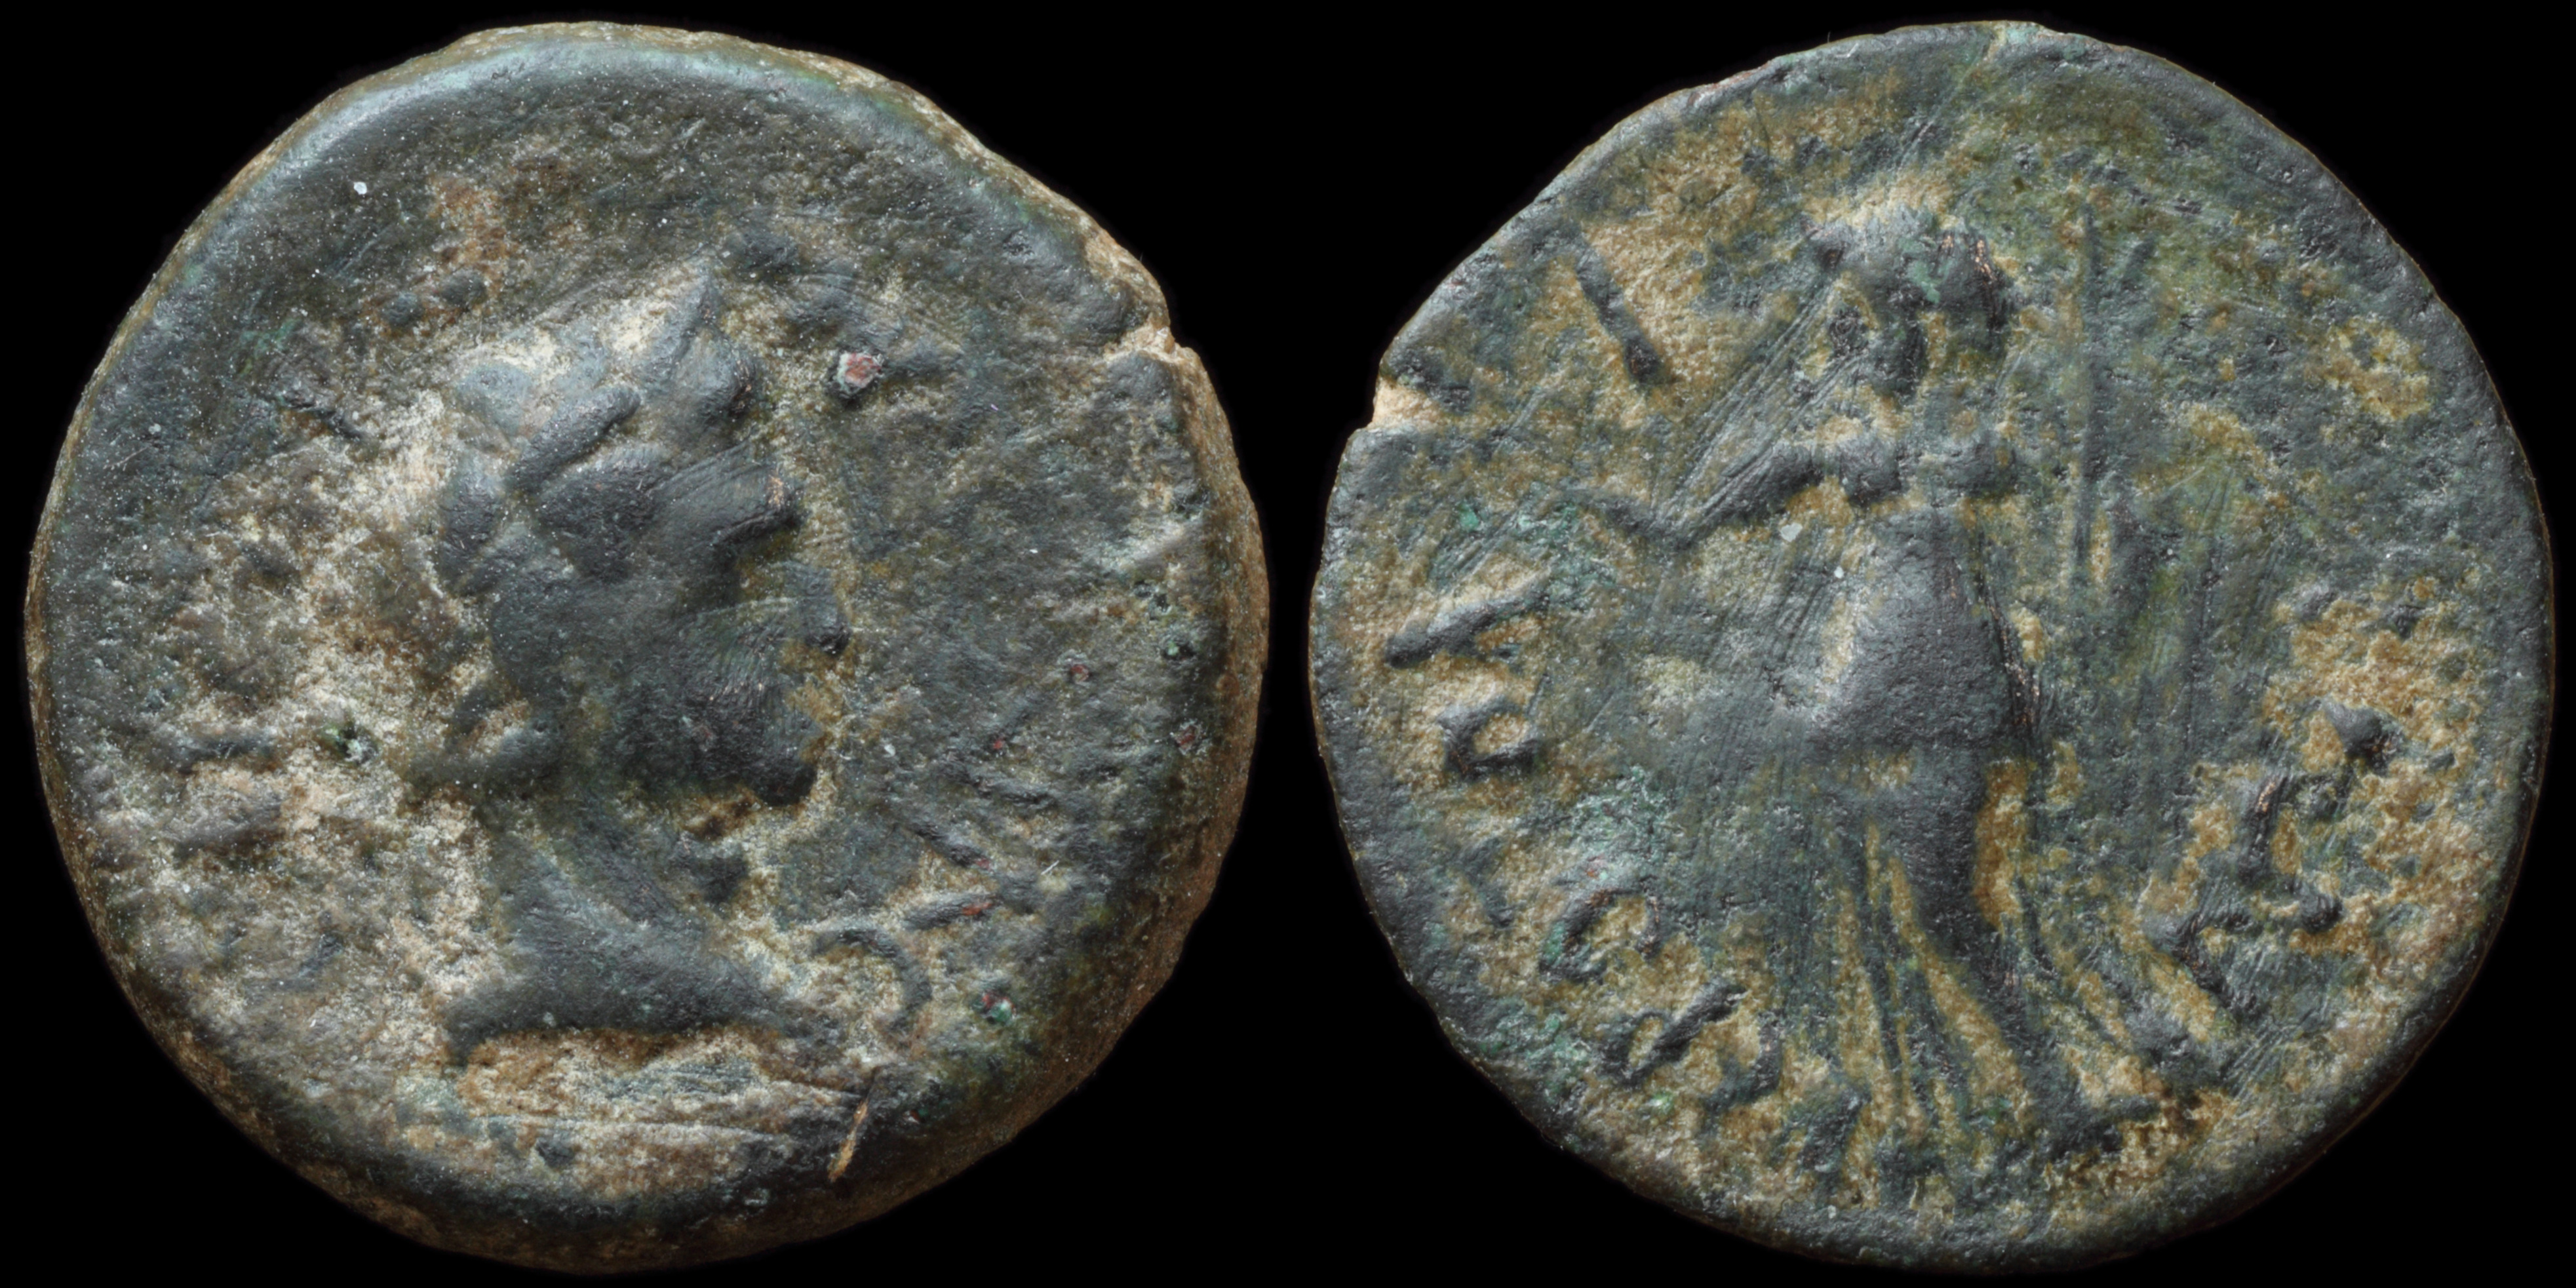 /Files/Images/Coinsite/CoinDB/1639_Nerva_Perinthos.jpg